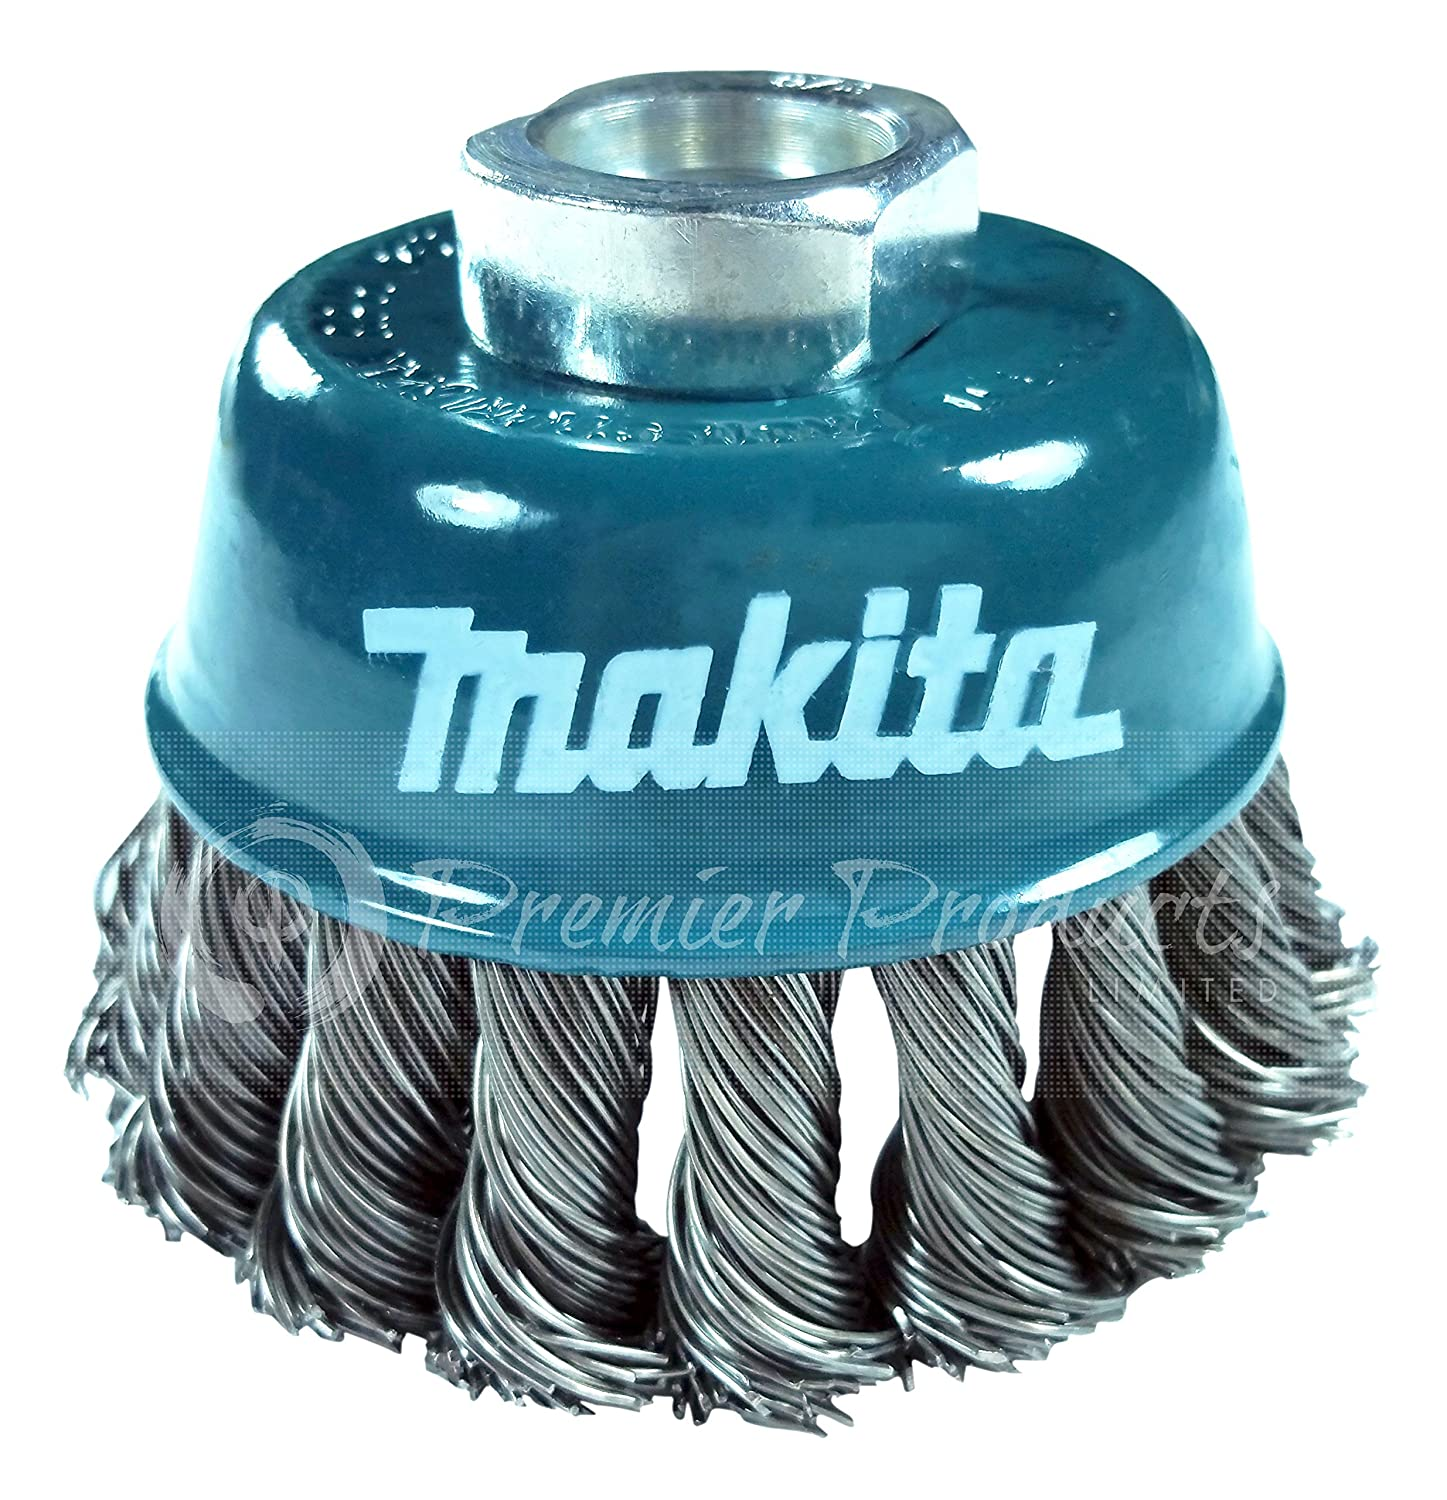 Makita 1 Piece 3 Inch Knotted Wire Cup Brush For Grinders Heavy Duty Conditioning For Metal 3 x 5 8 Inch | 11 UNC